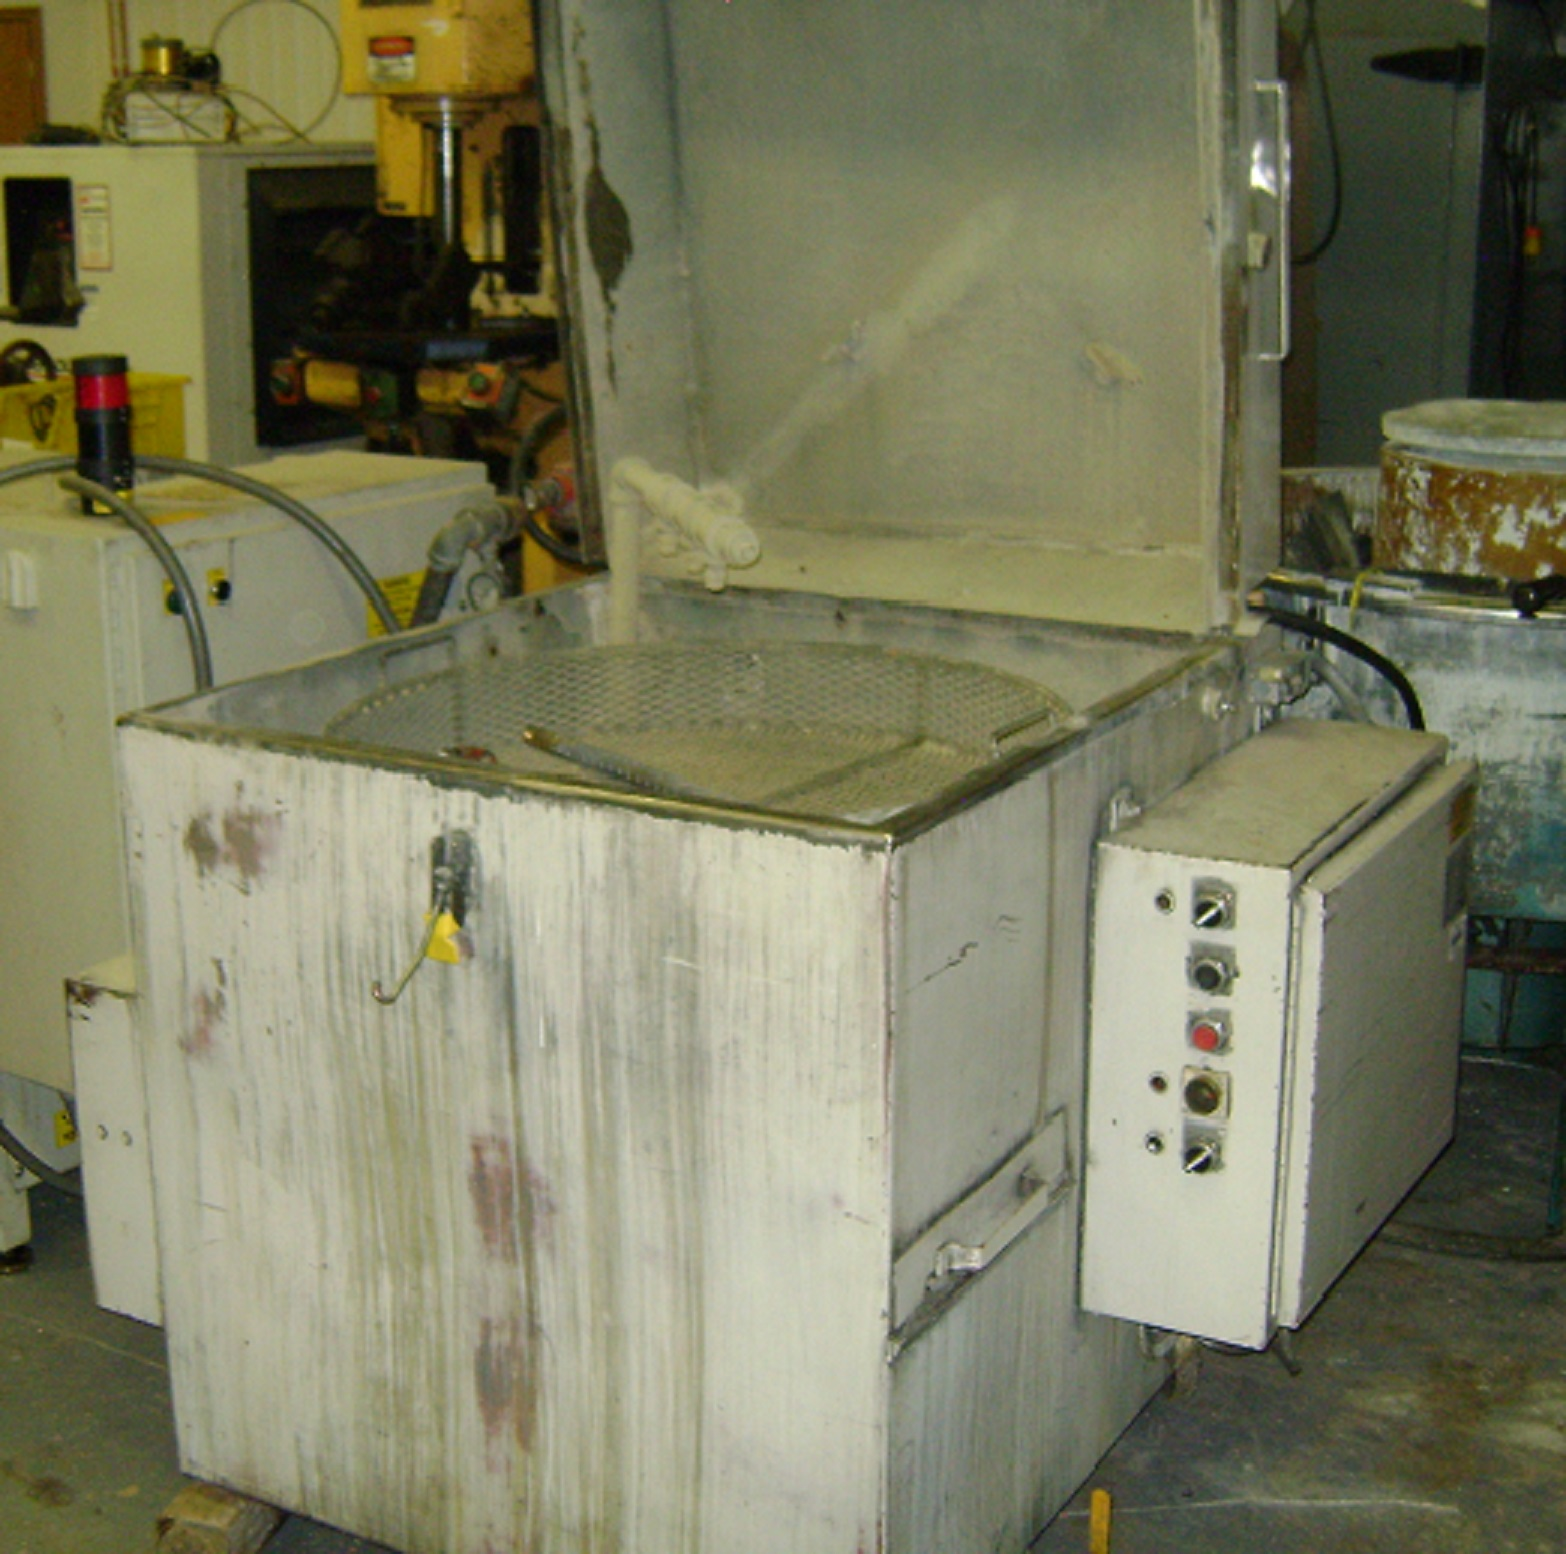 (1) PREOWNED 1993 ADF SYSTEMS TOPLOAD WASHER MODEL 800, SN <br>9310-<br>2192